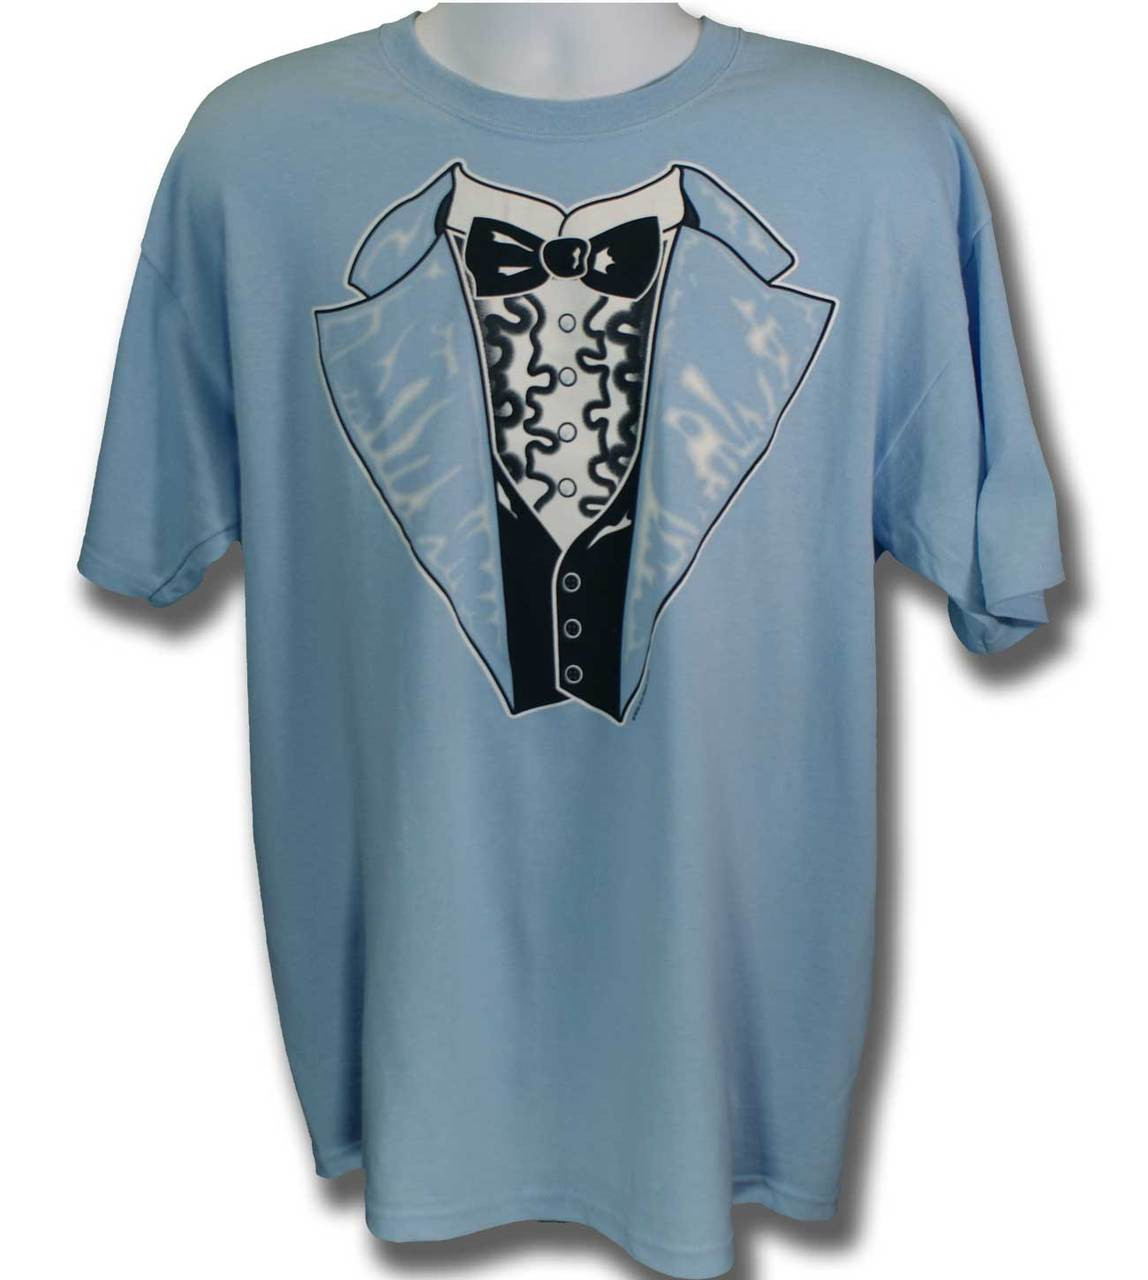 value for money coupon codes watch Retro Tuxedo T-shirt in Blue